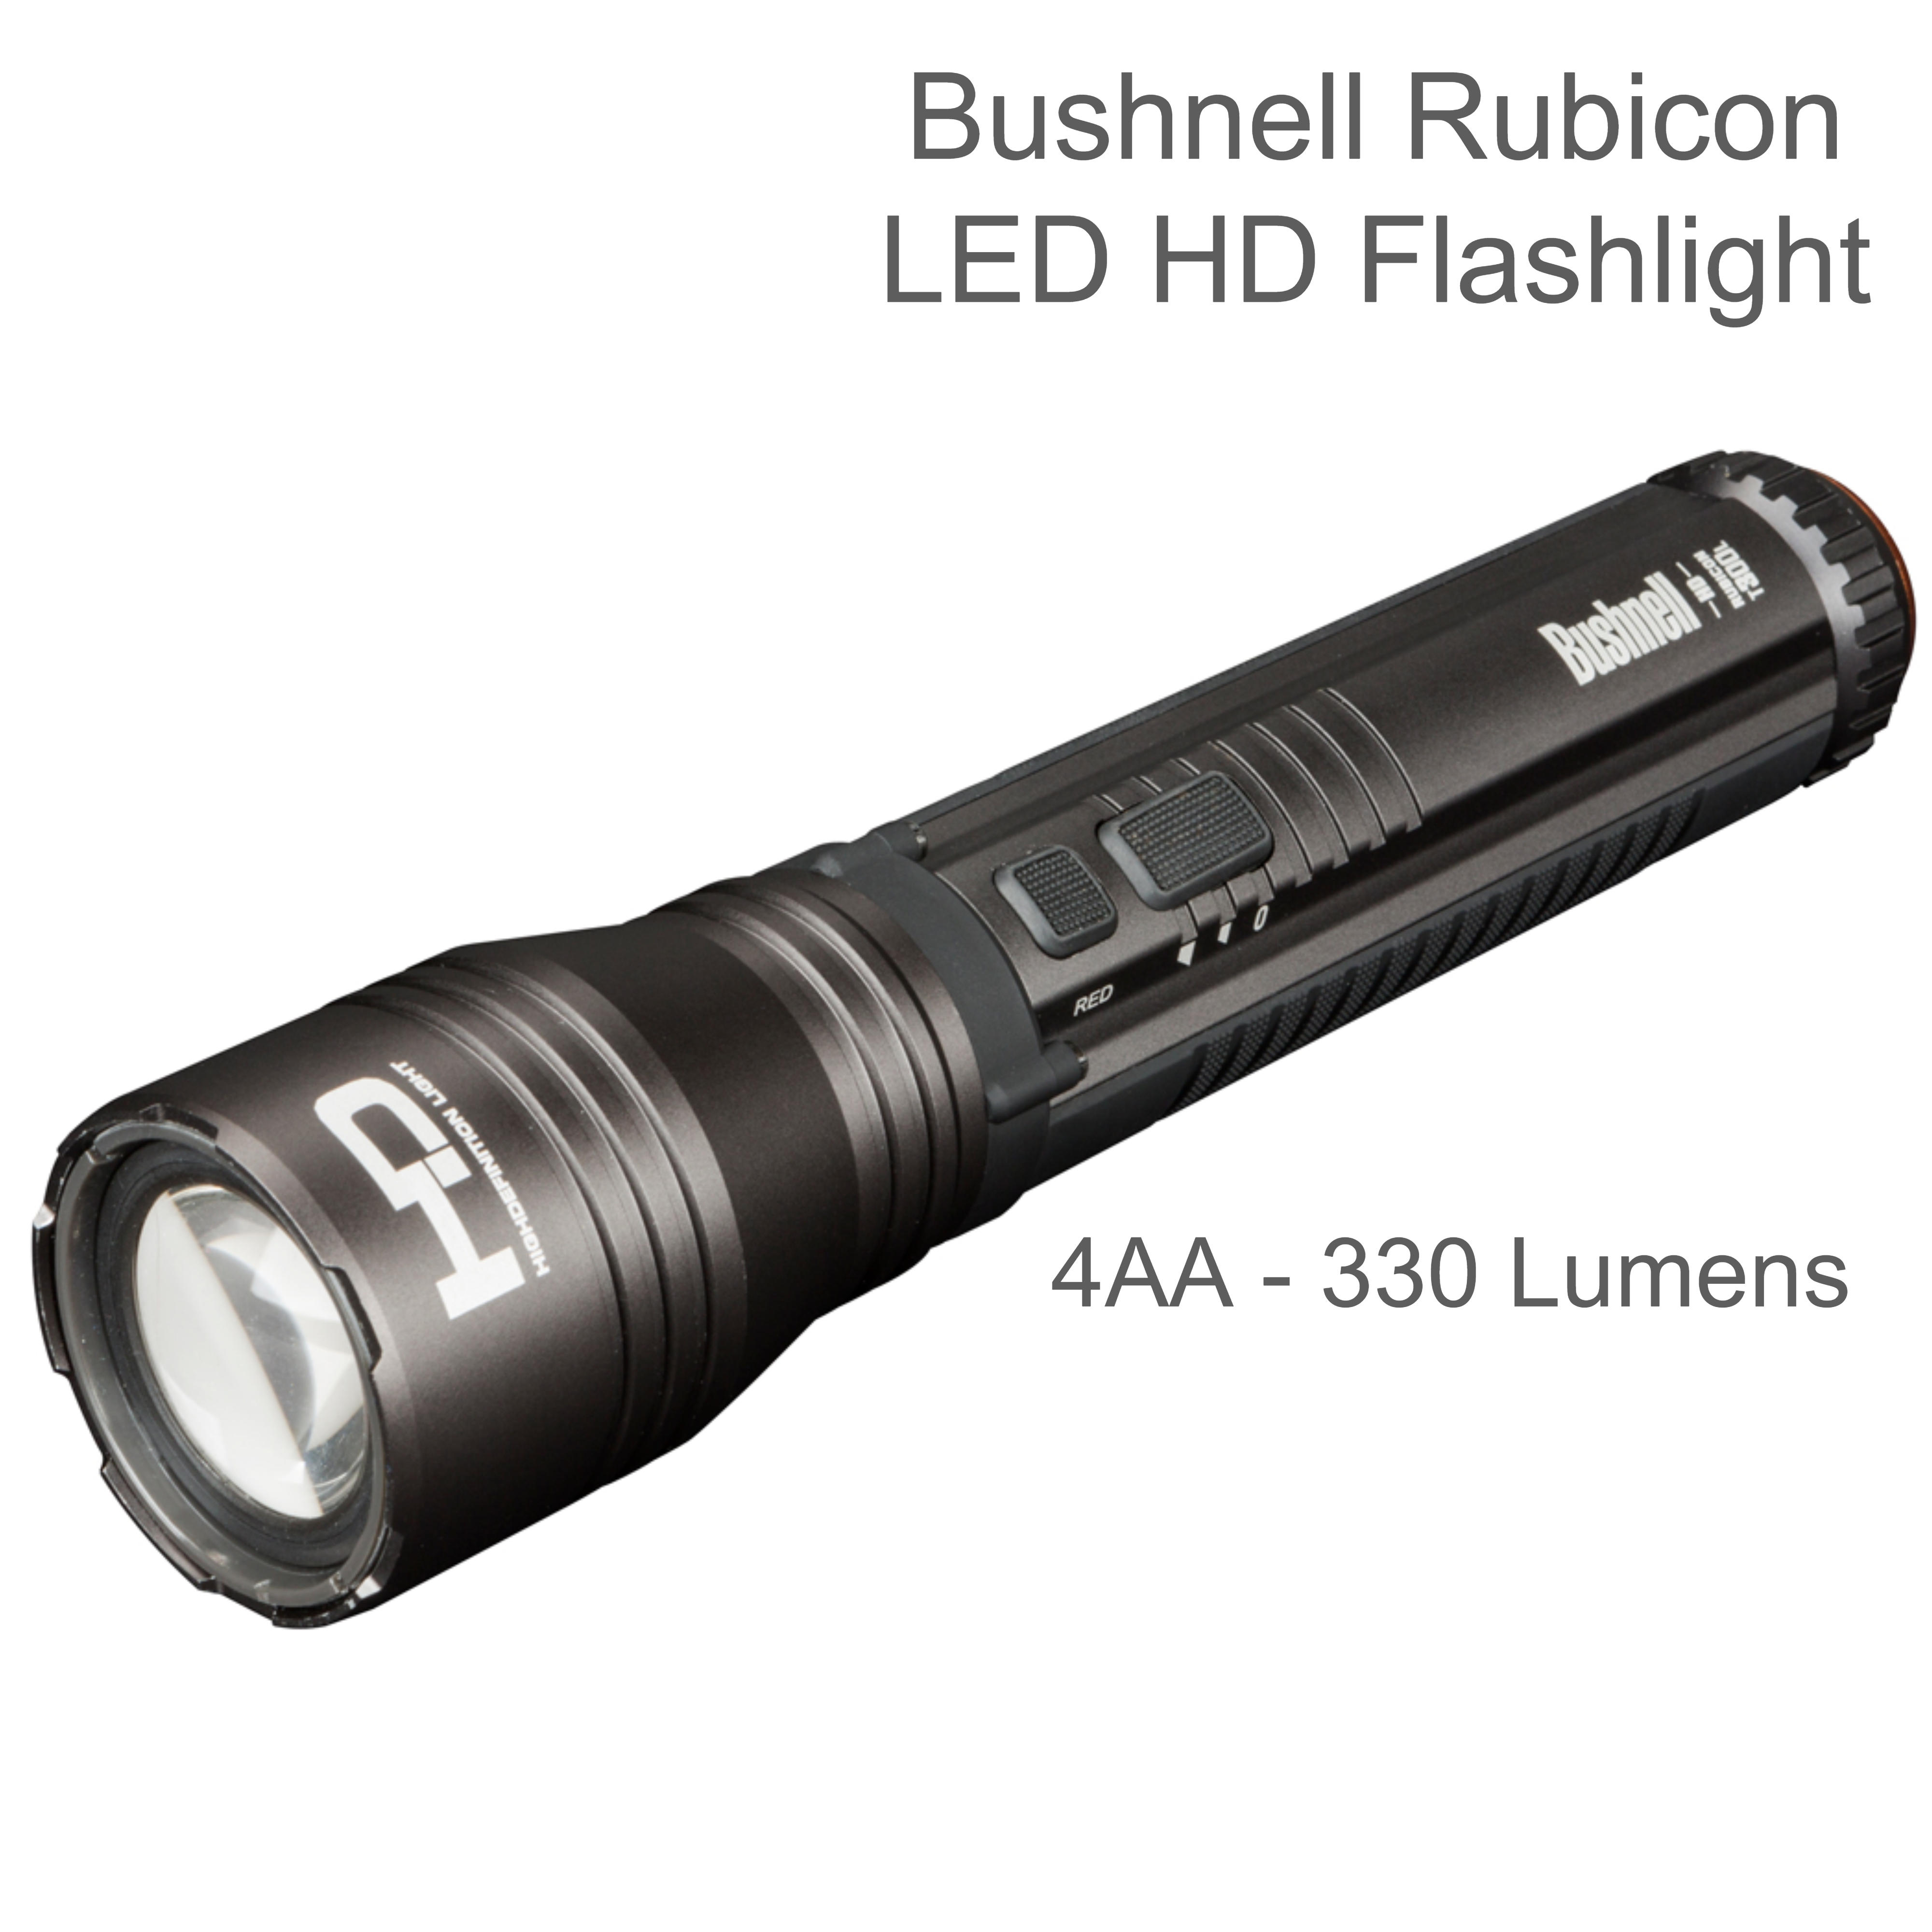 Bushnell 10T300HDM Rubicon HD LED Flashlight | 4AA - 330 Lumens Torch | Cree LEDs | IPX-4